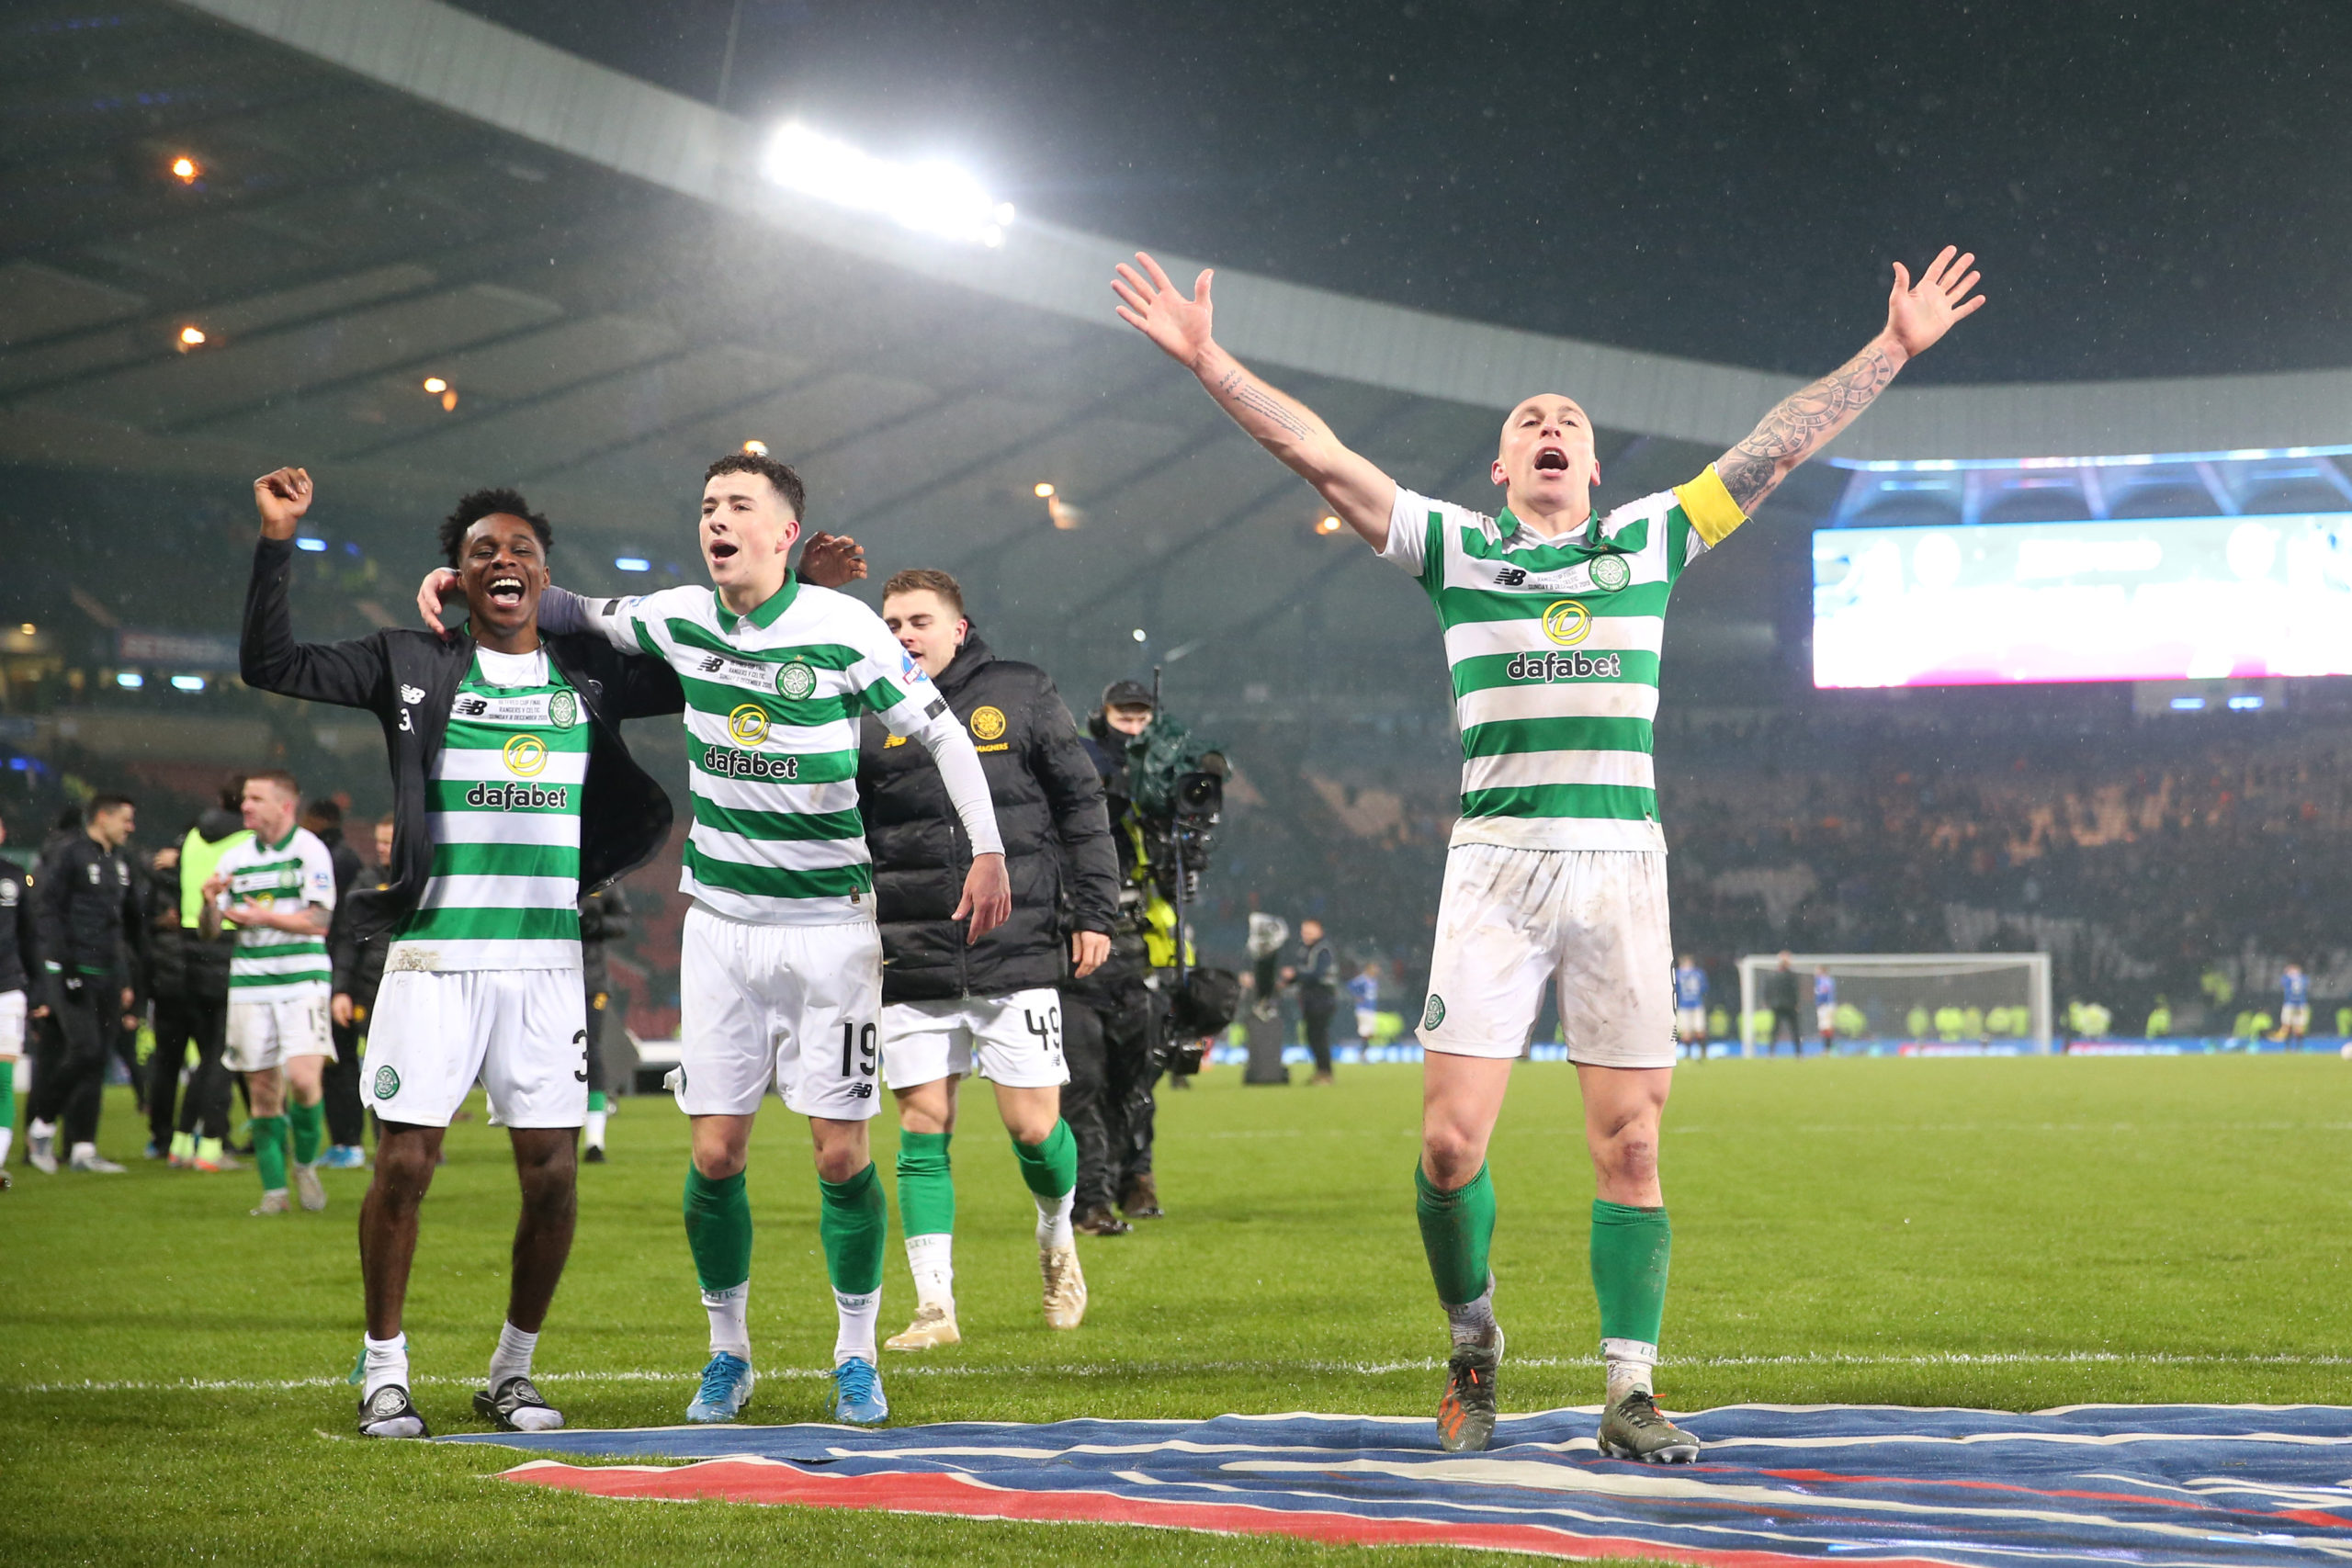 Celtic Carabao Cup